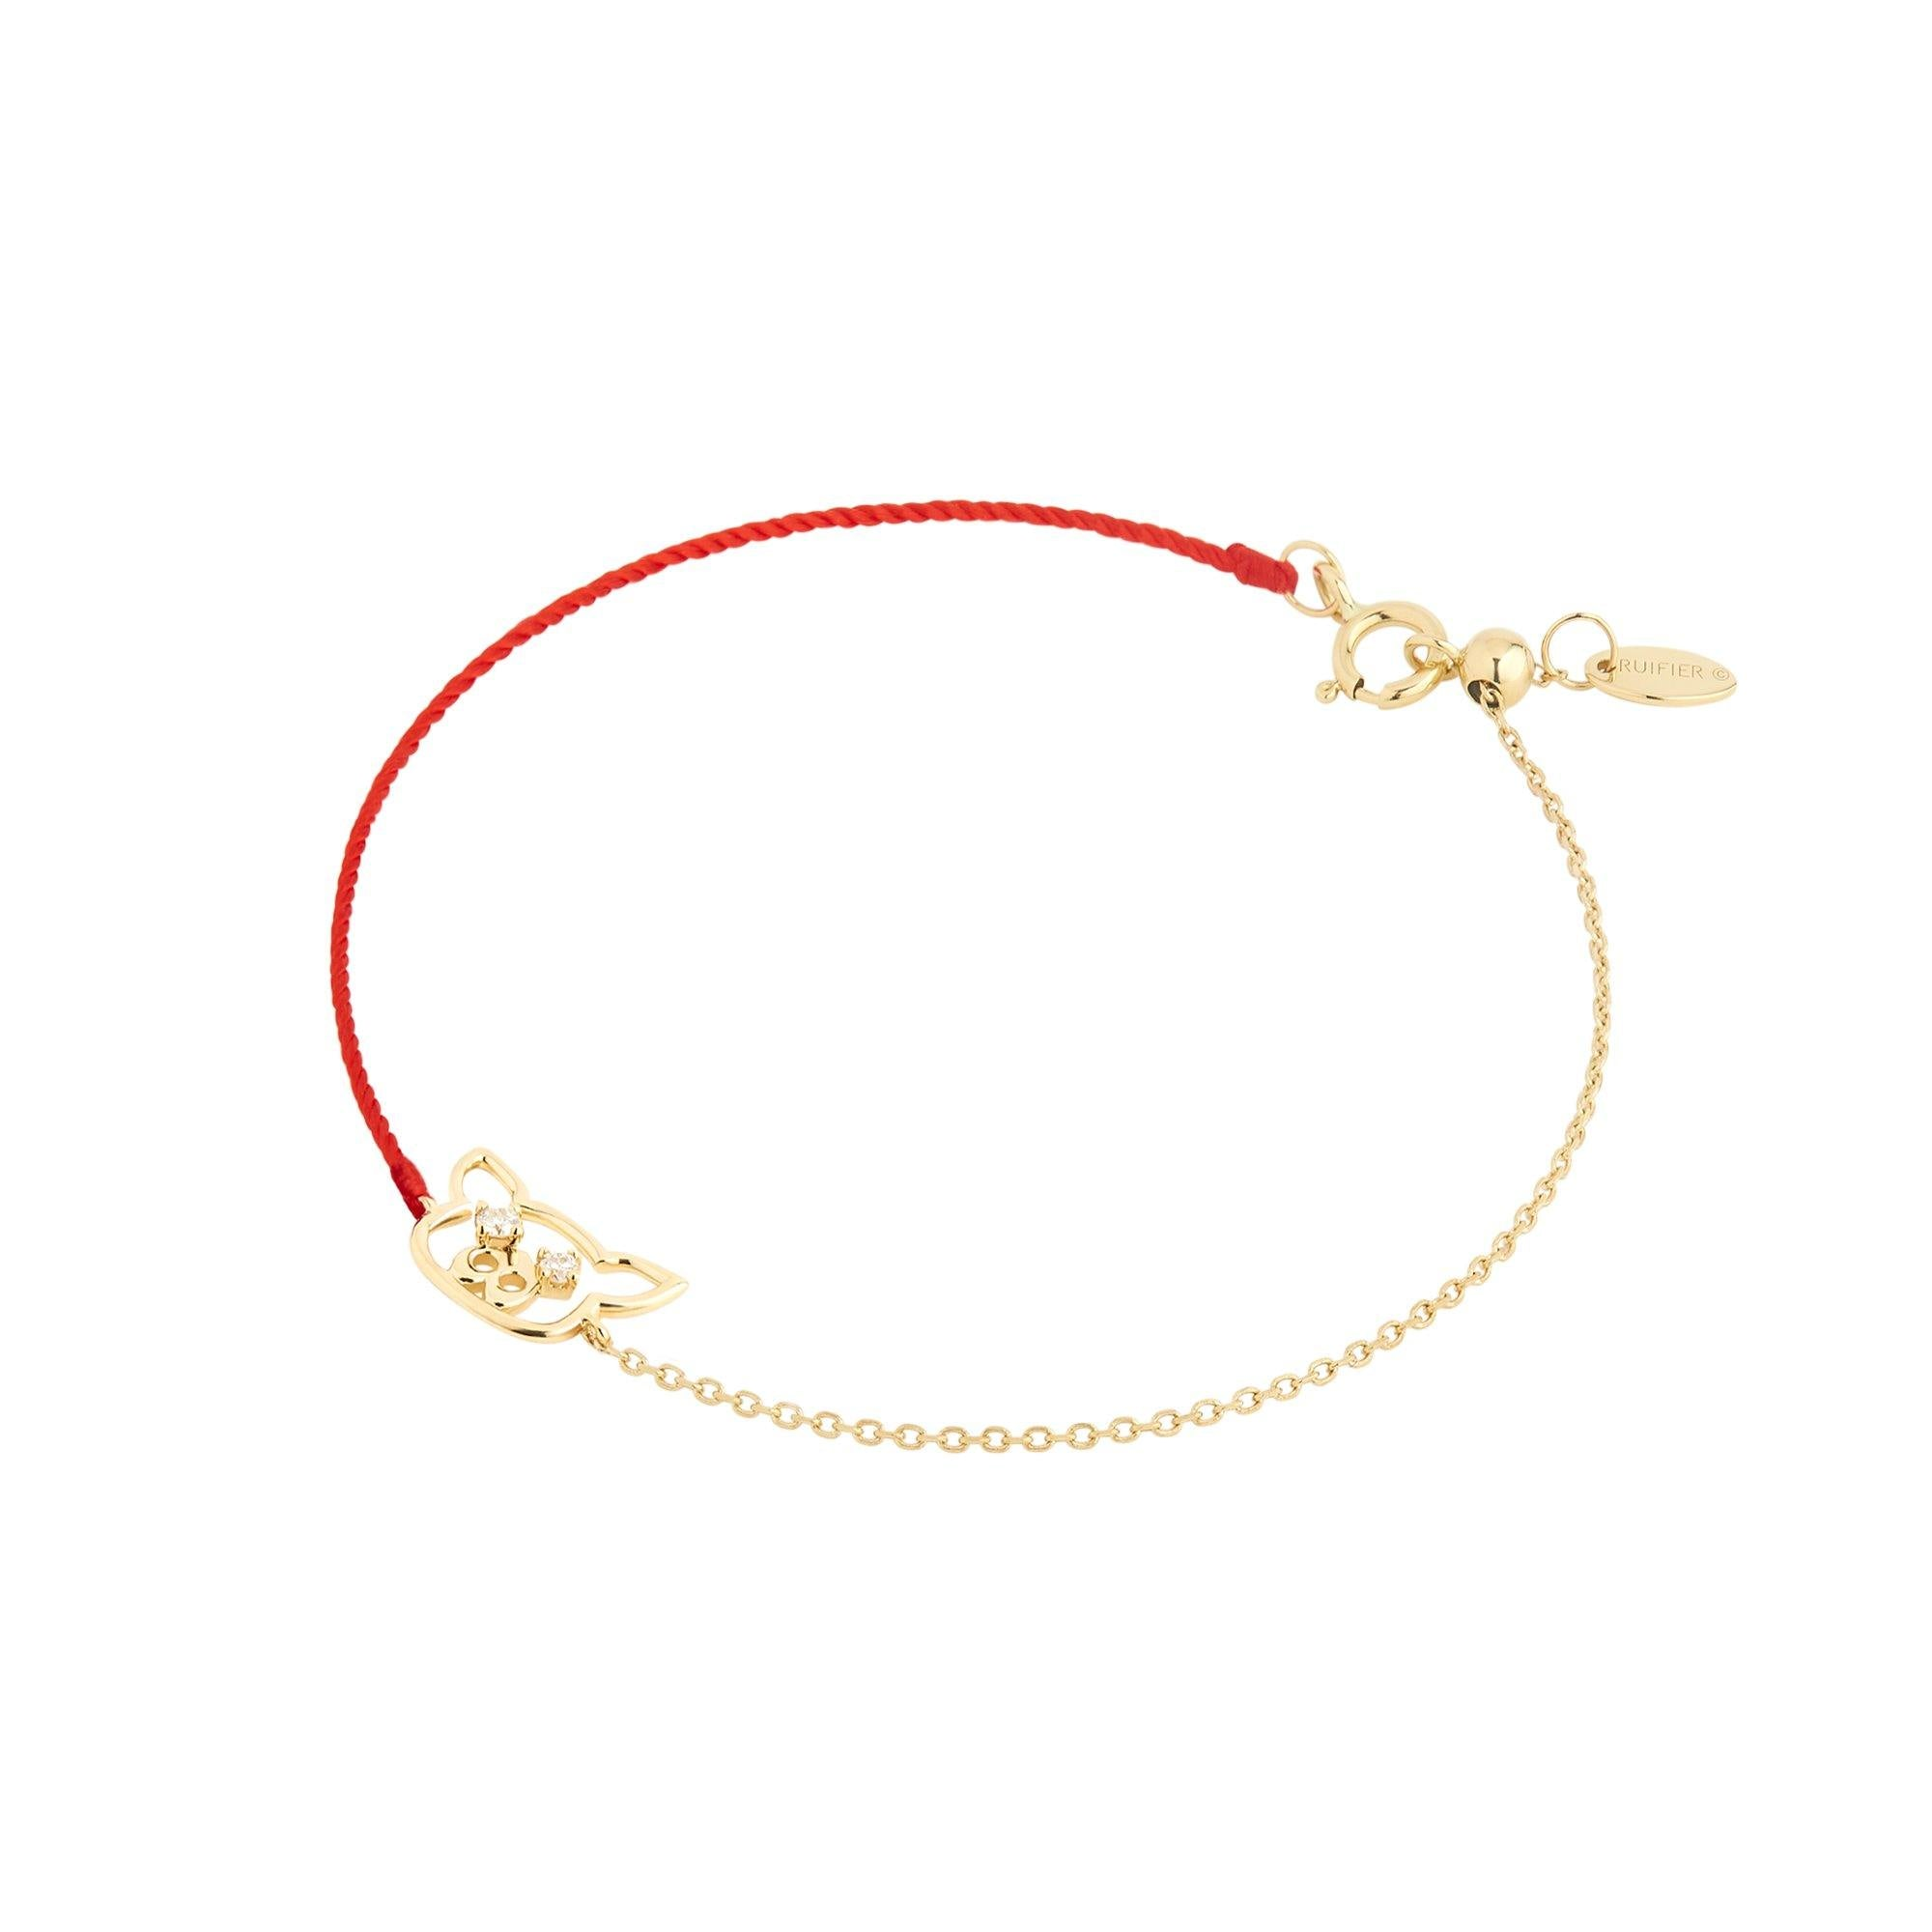 Scintilla Year of the Pig Hybrid Bracelet - RUIFIER